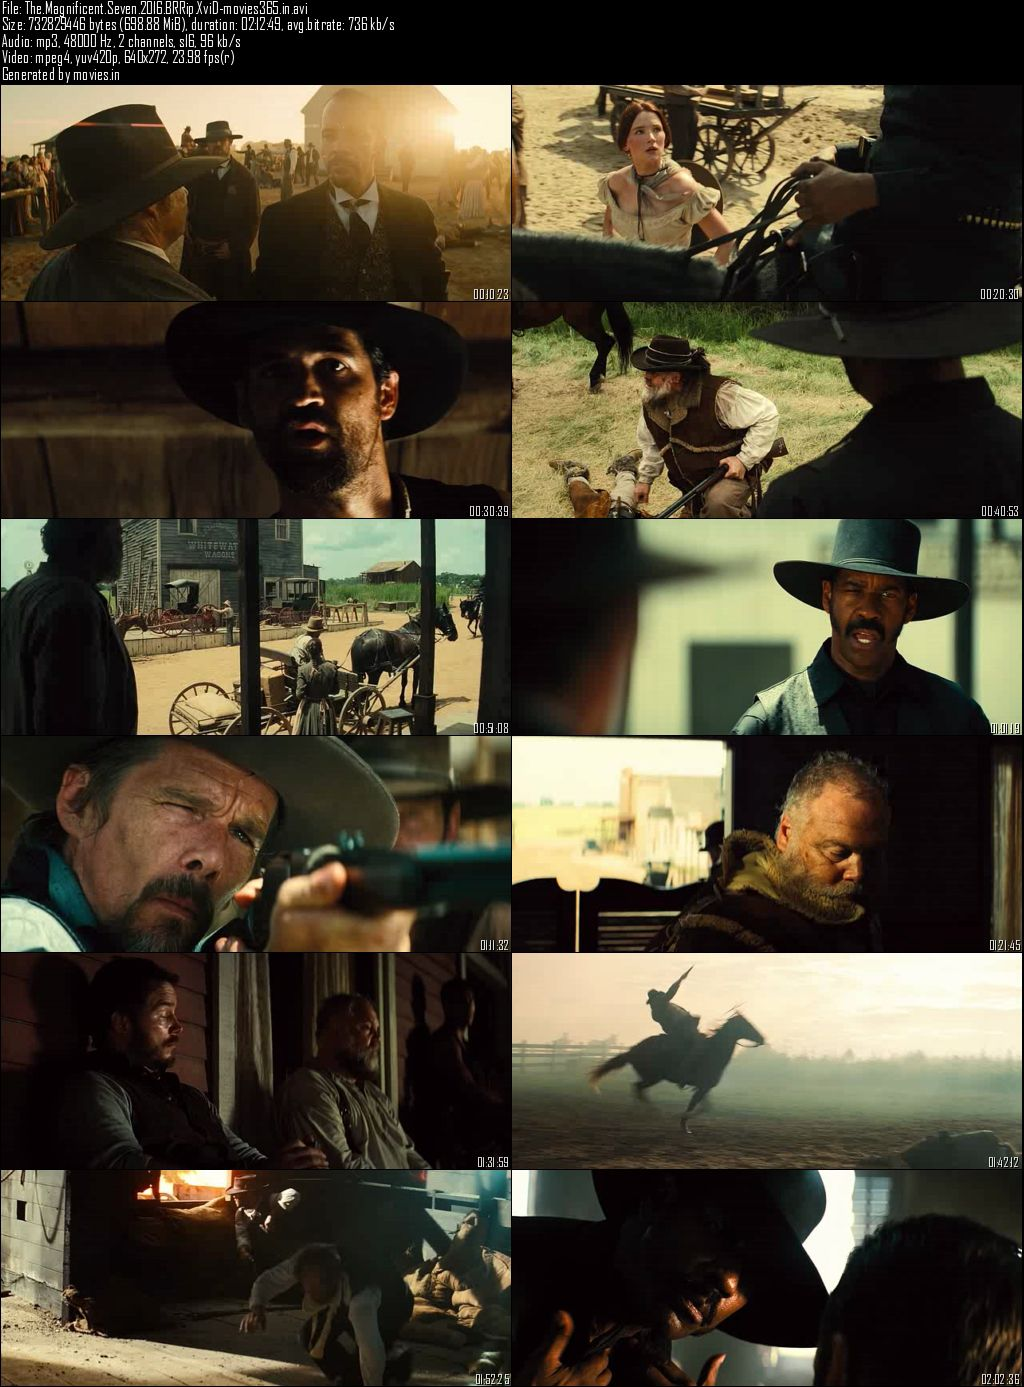 Single Resumable Download Link For Movie The Magnificent Seven (2016) Download And Watch Online For Free